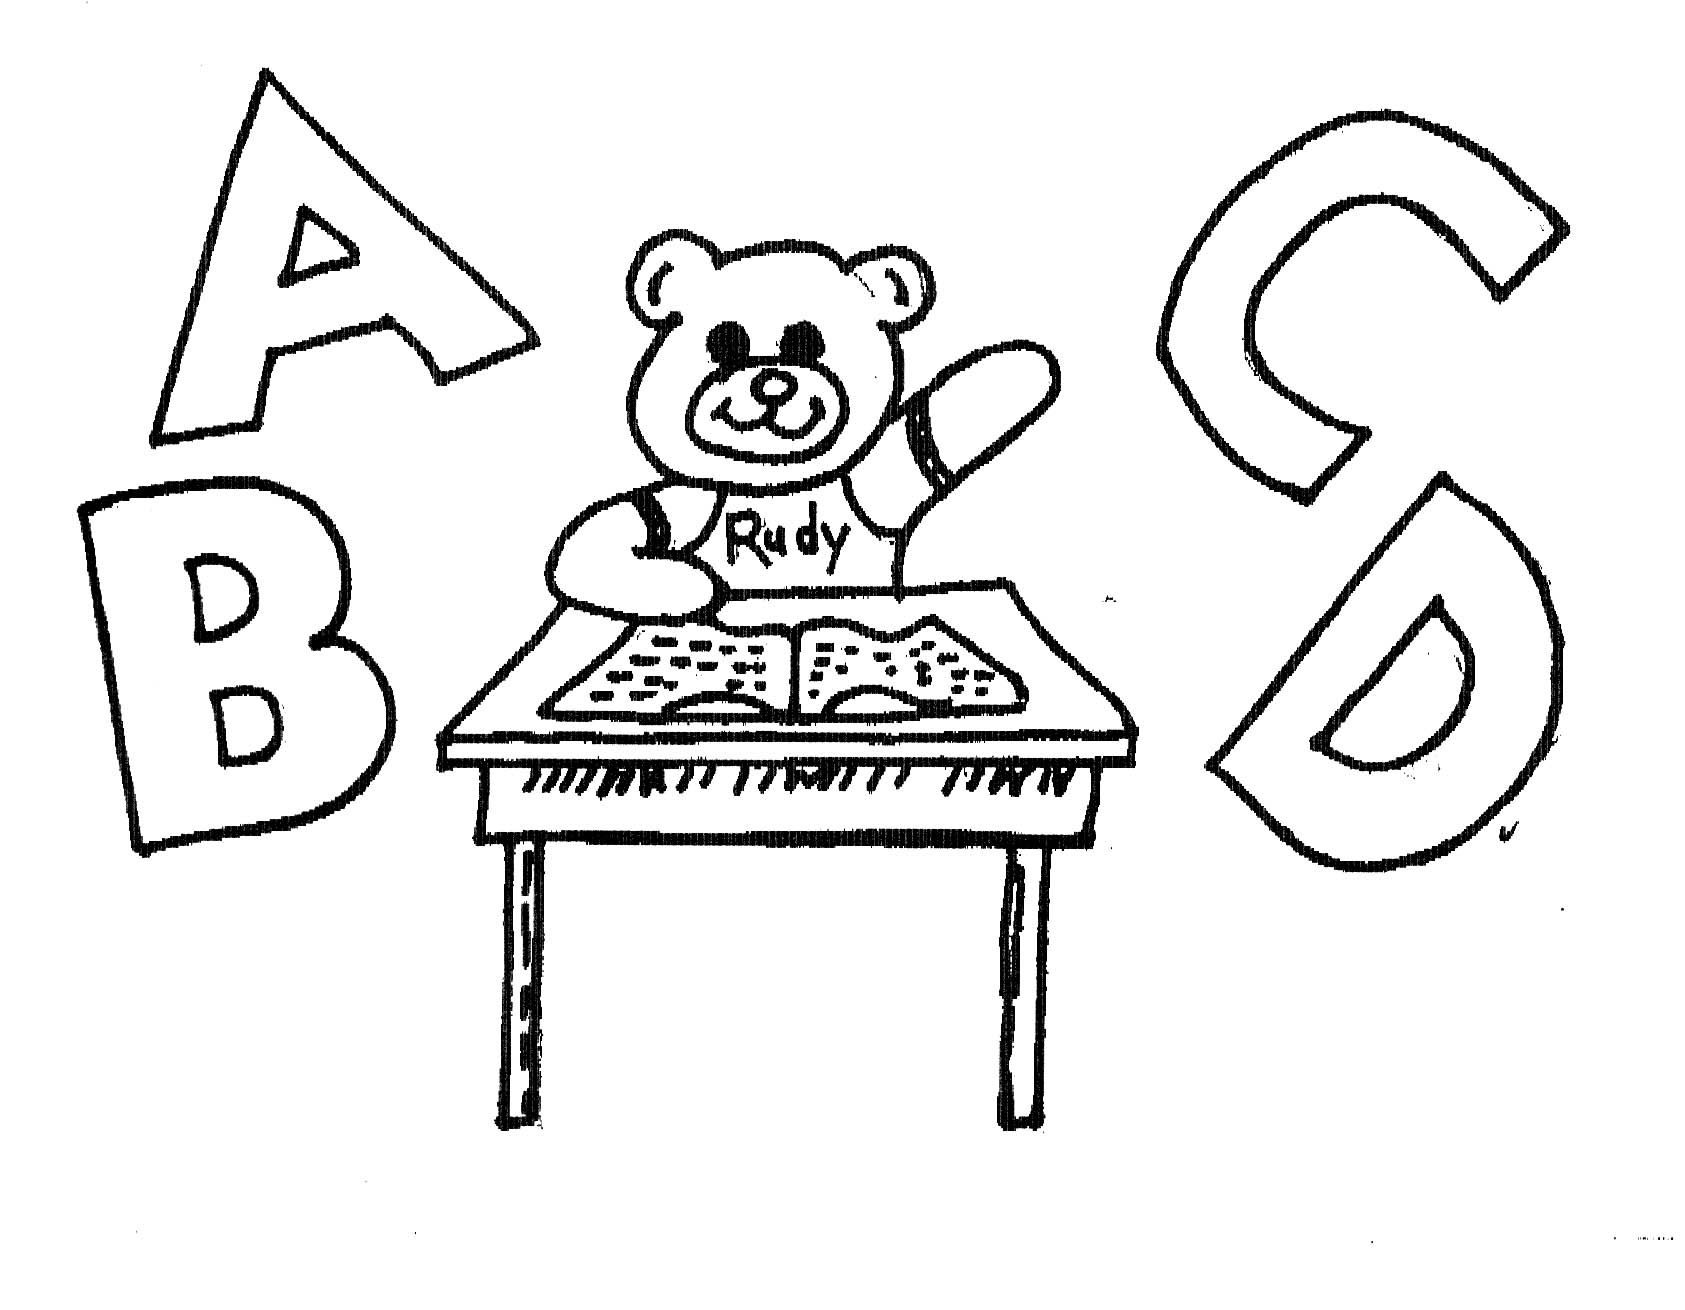 Rudy and his ABCs (jpeg picture)